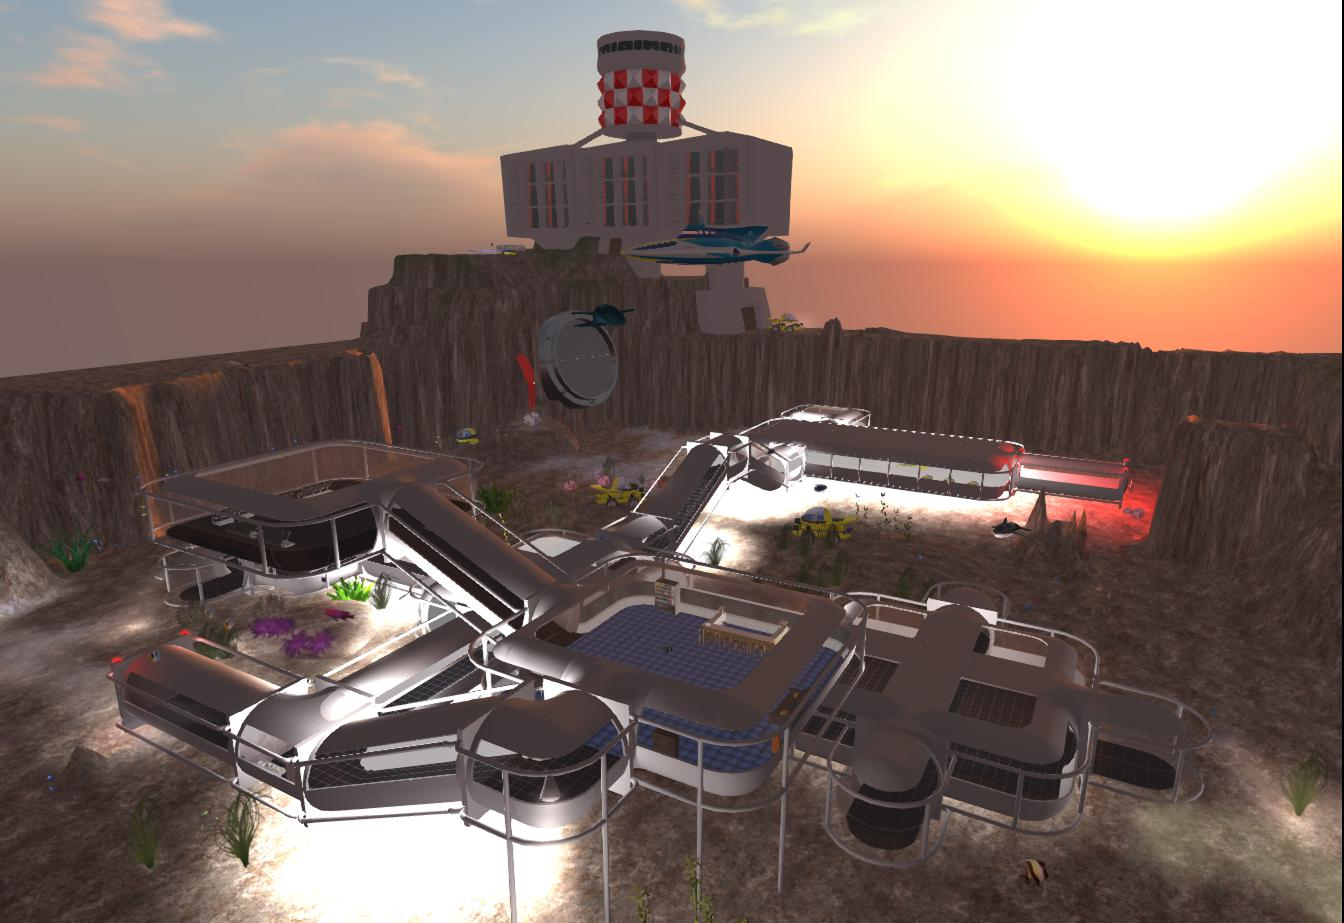 2013-10-08-Marineville-on-OSGrid-Water-Drained-2